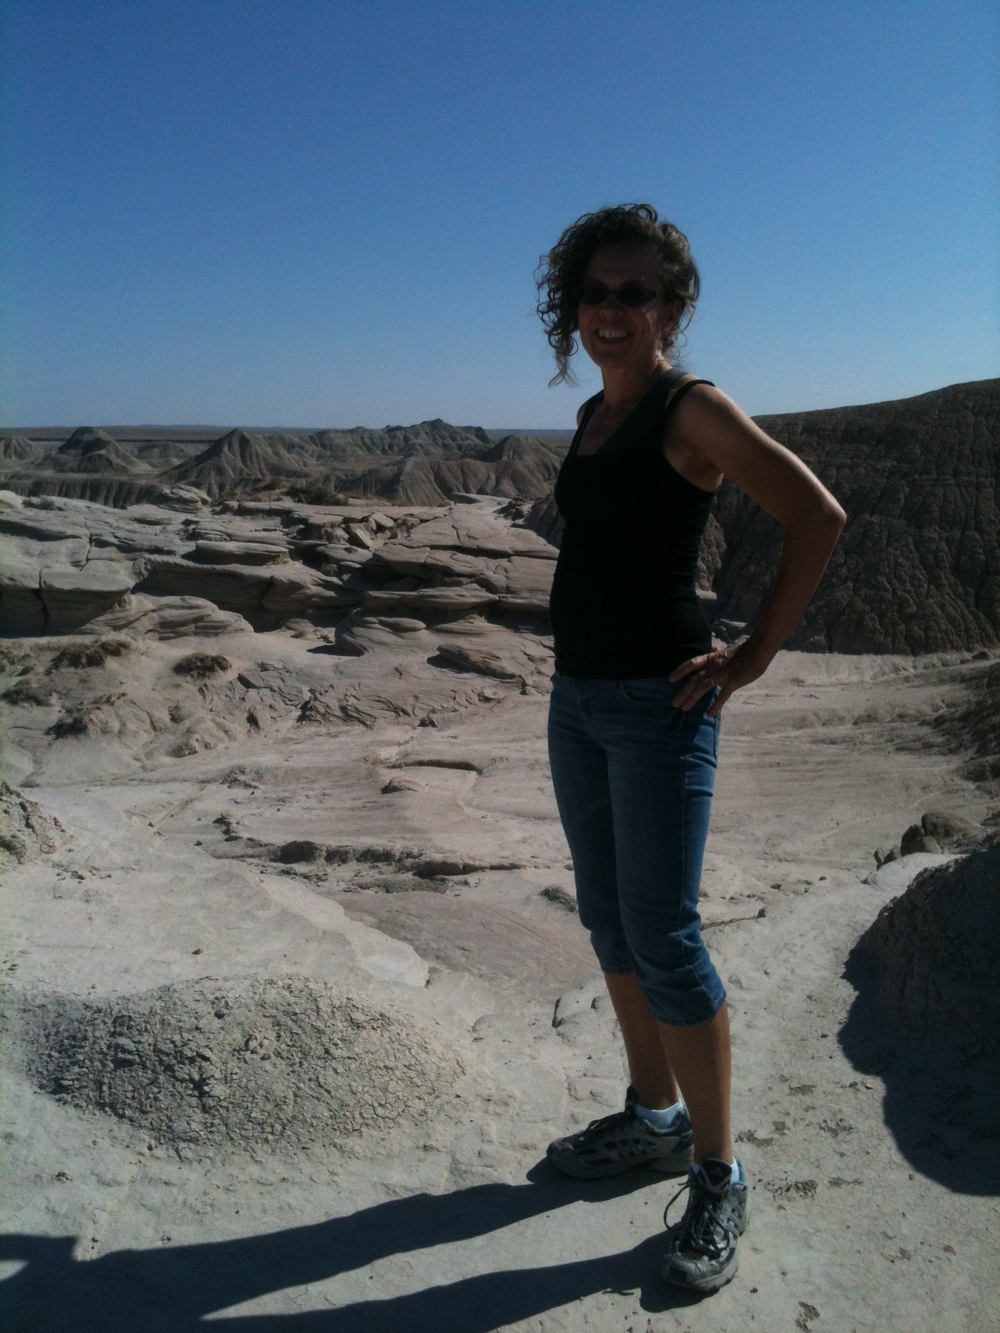 The real me, un-made-up, sweaty, hiking Toadstool Geologic Park last summer